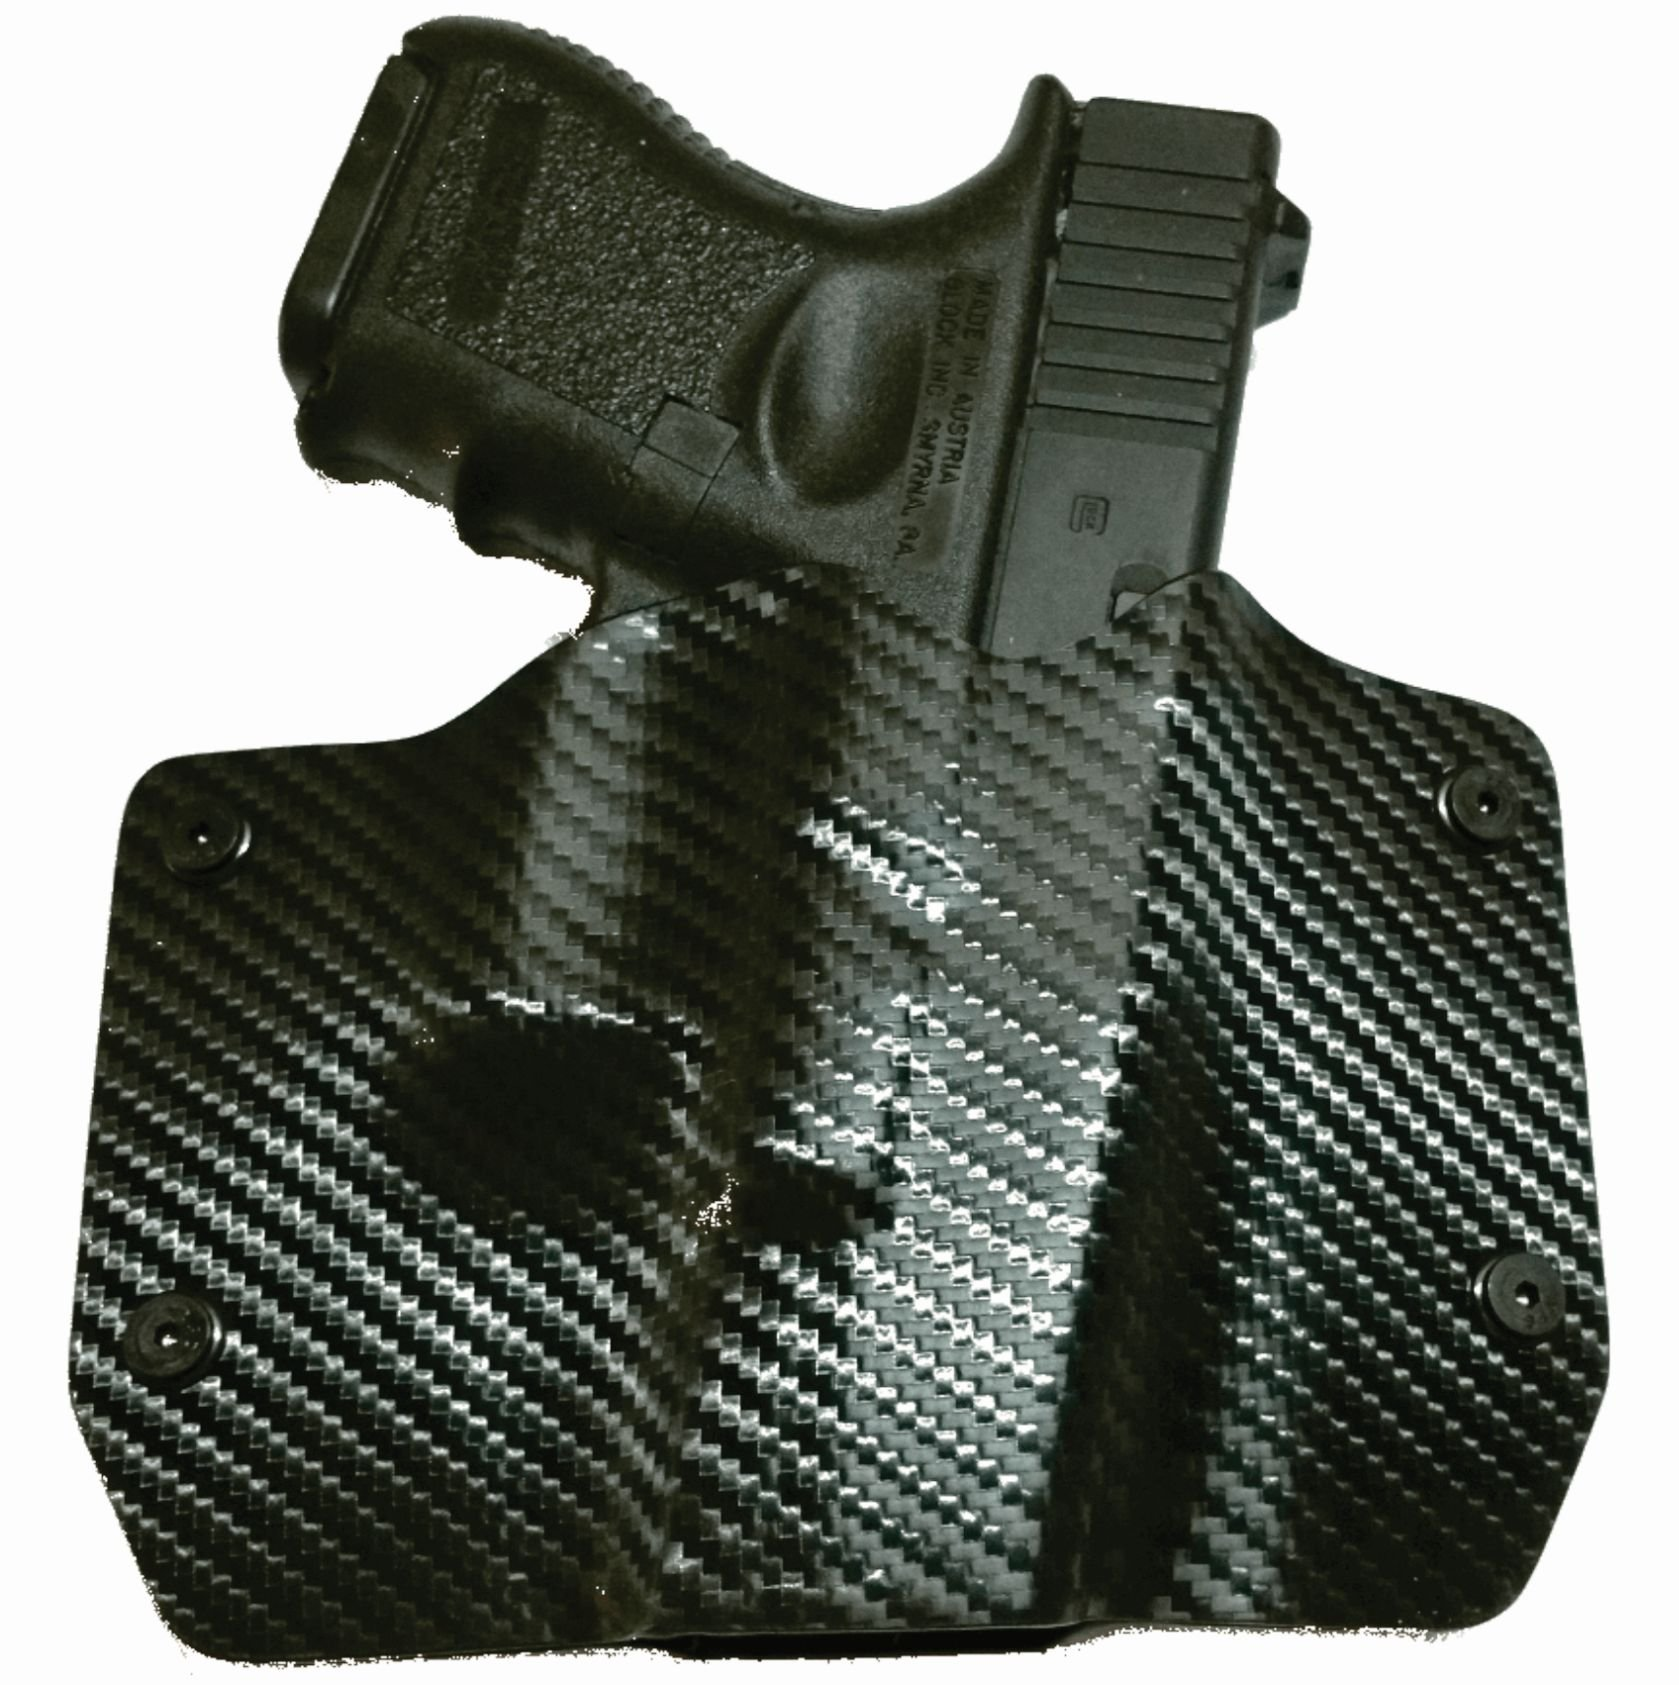 Black Carbon Fiber Kydex OWB Holsters